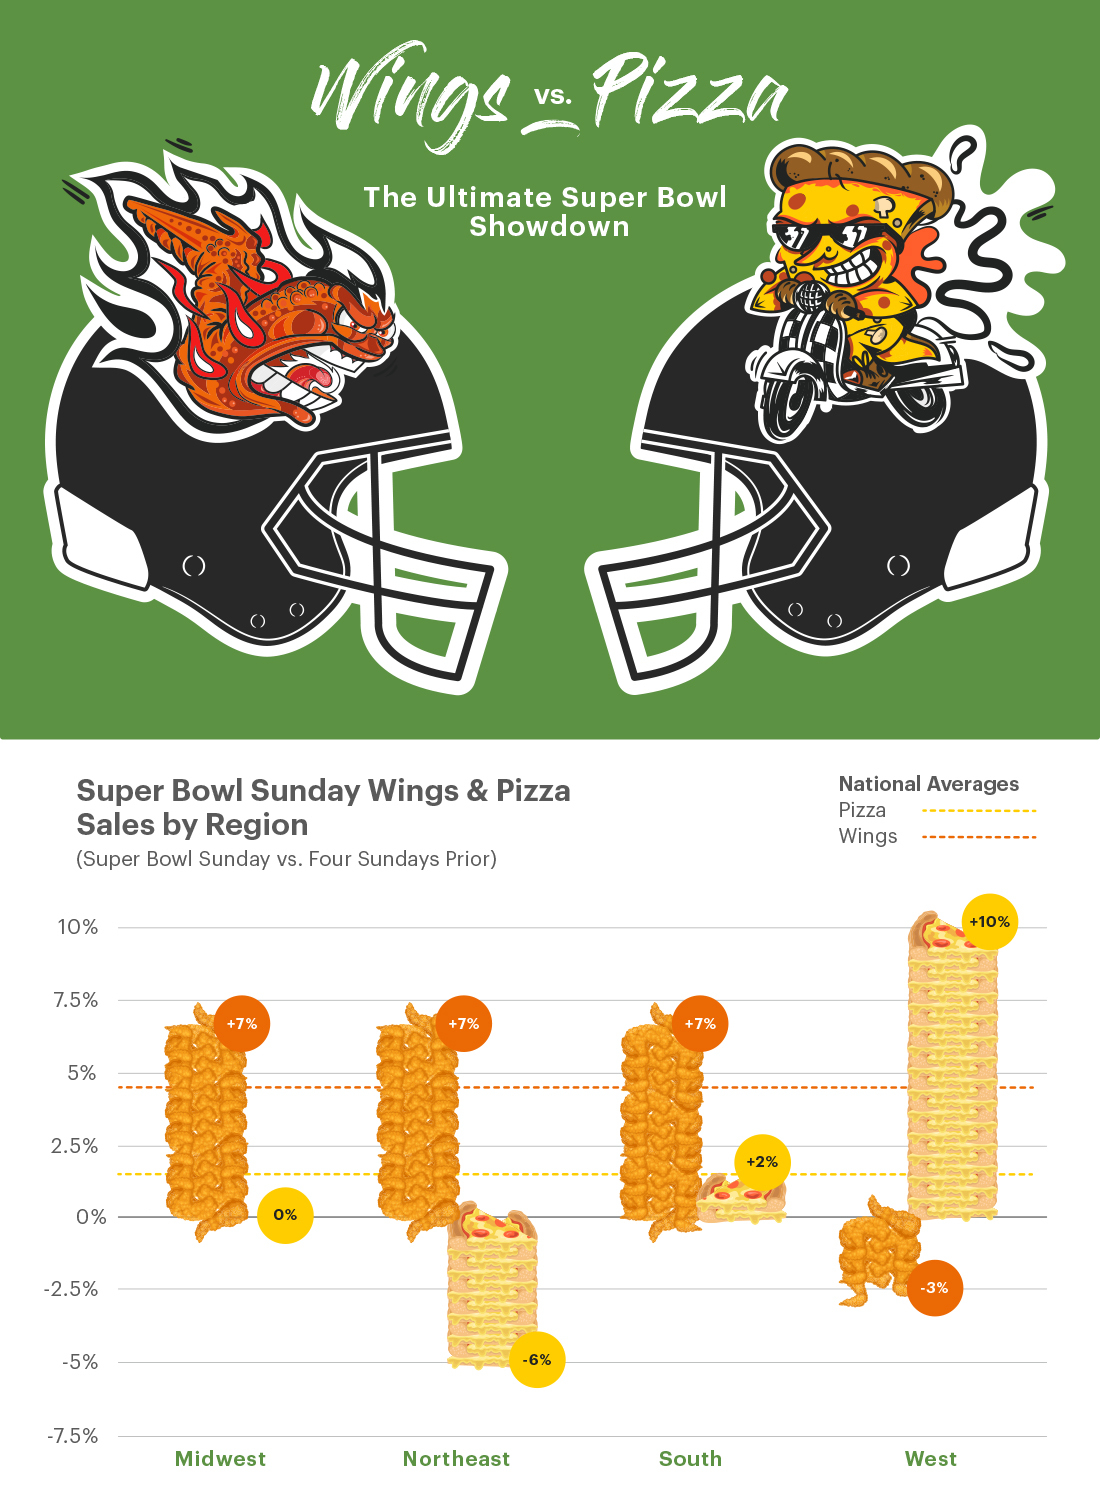 Wings vs. Pizza on Super Bowl Sunday